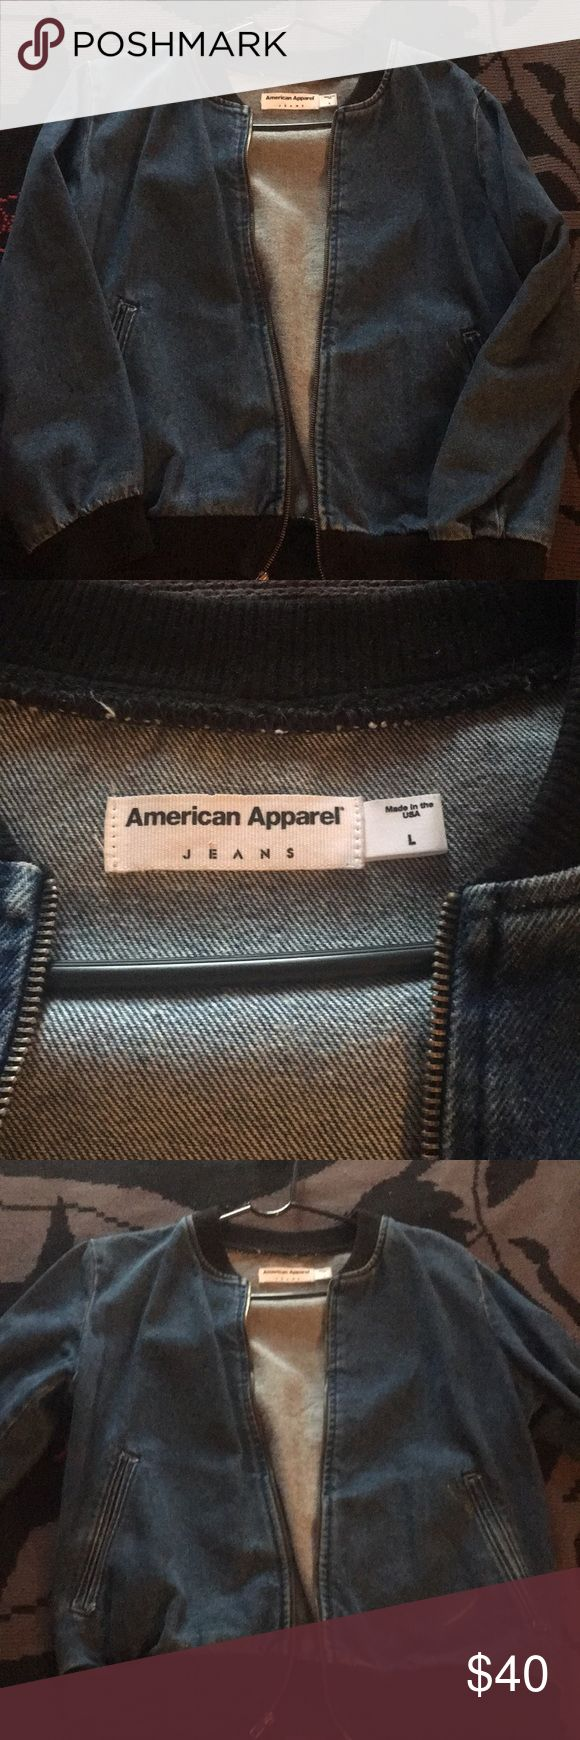 American Apparel jean bomber jacket Dead stock jacket, arms are too short for me. Fits more of a medium. American Apparel Jackets & Coats